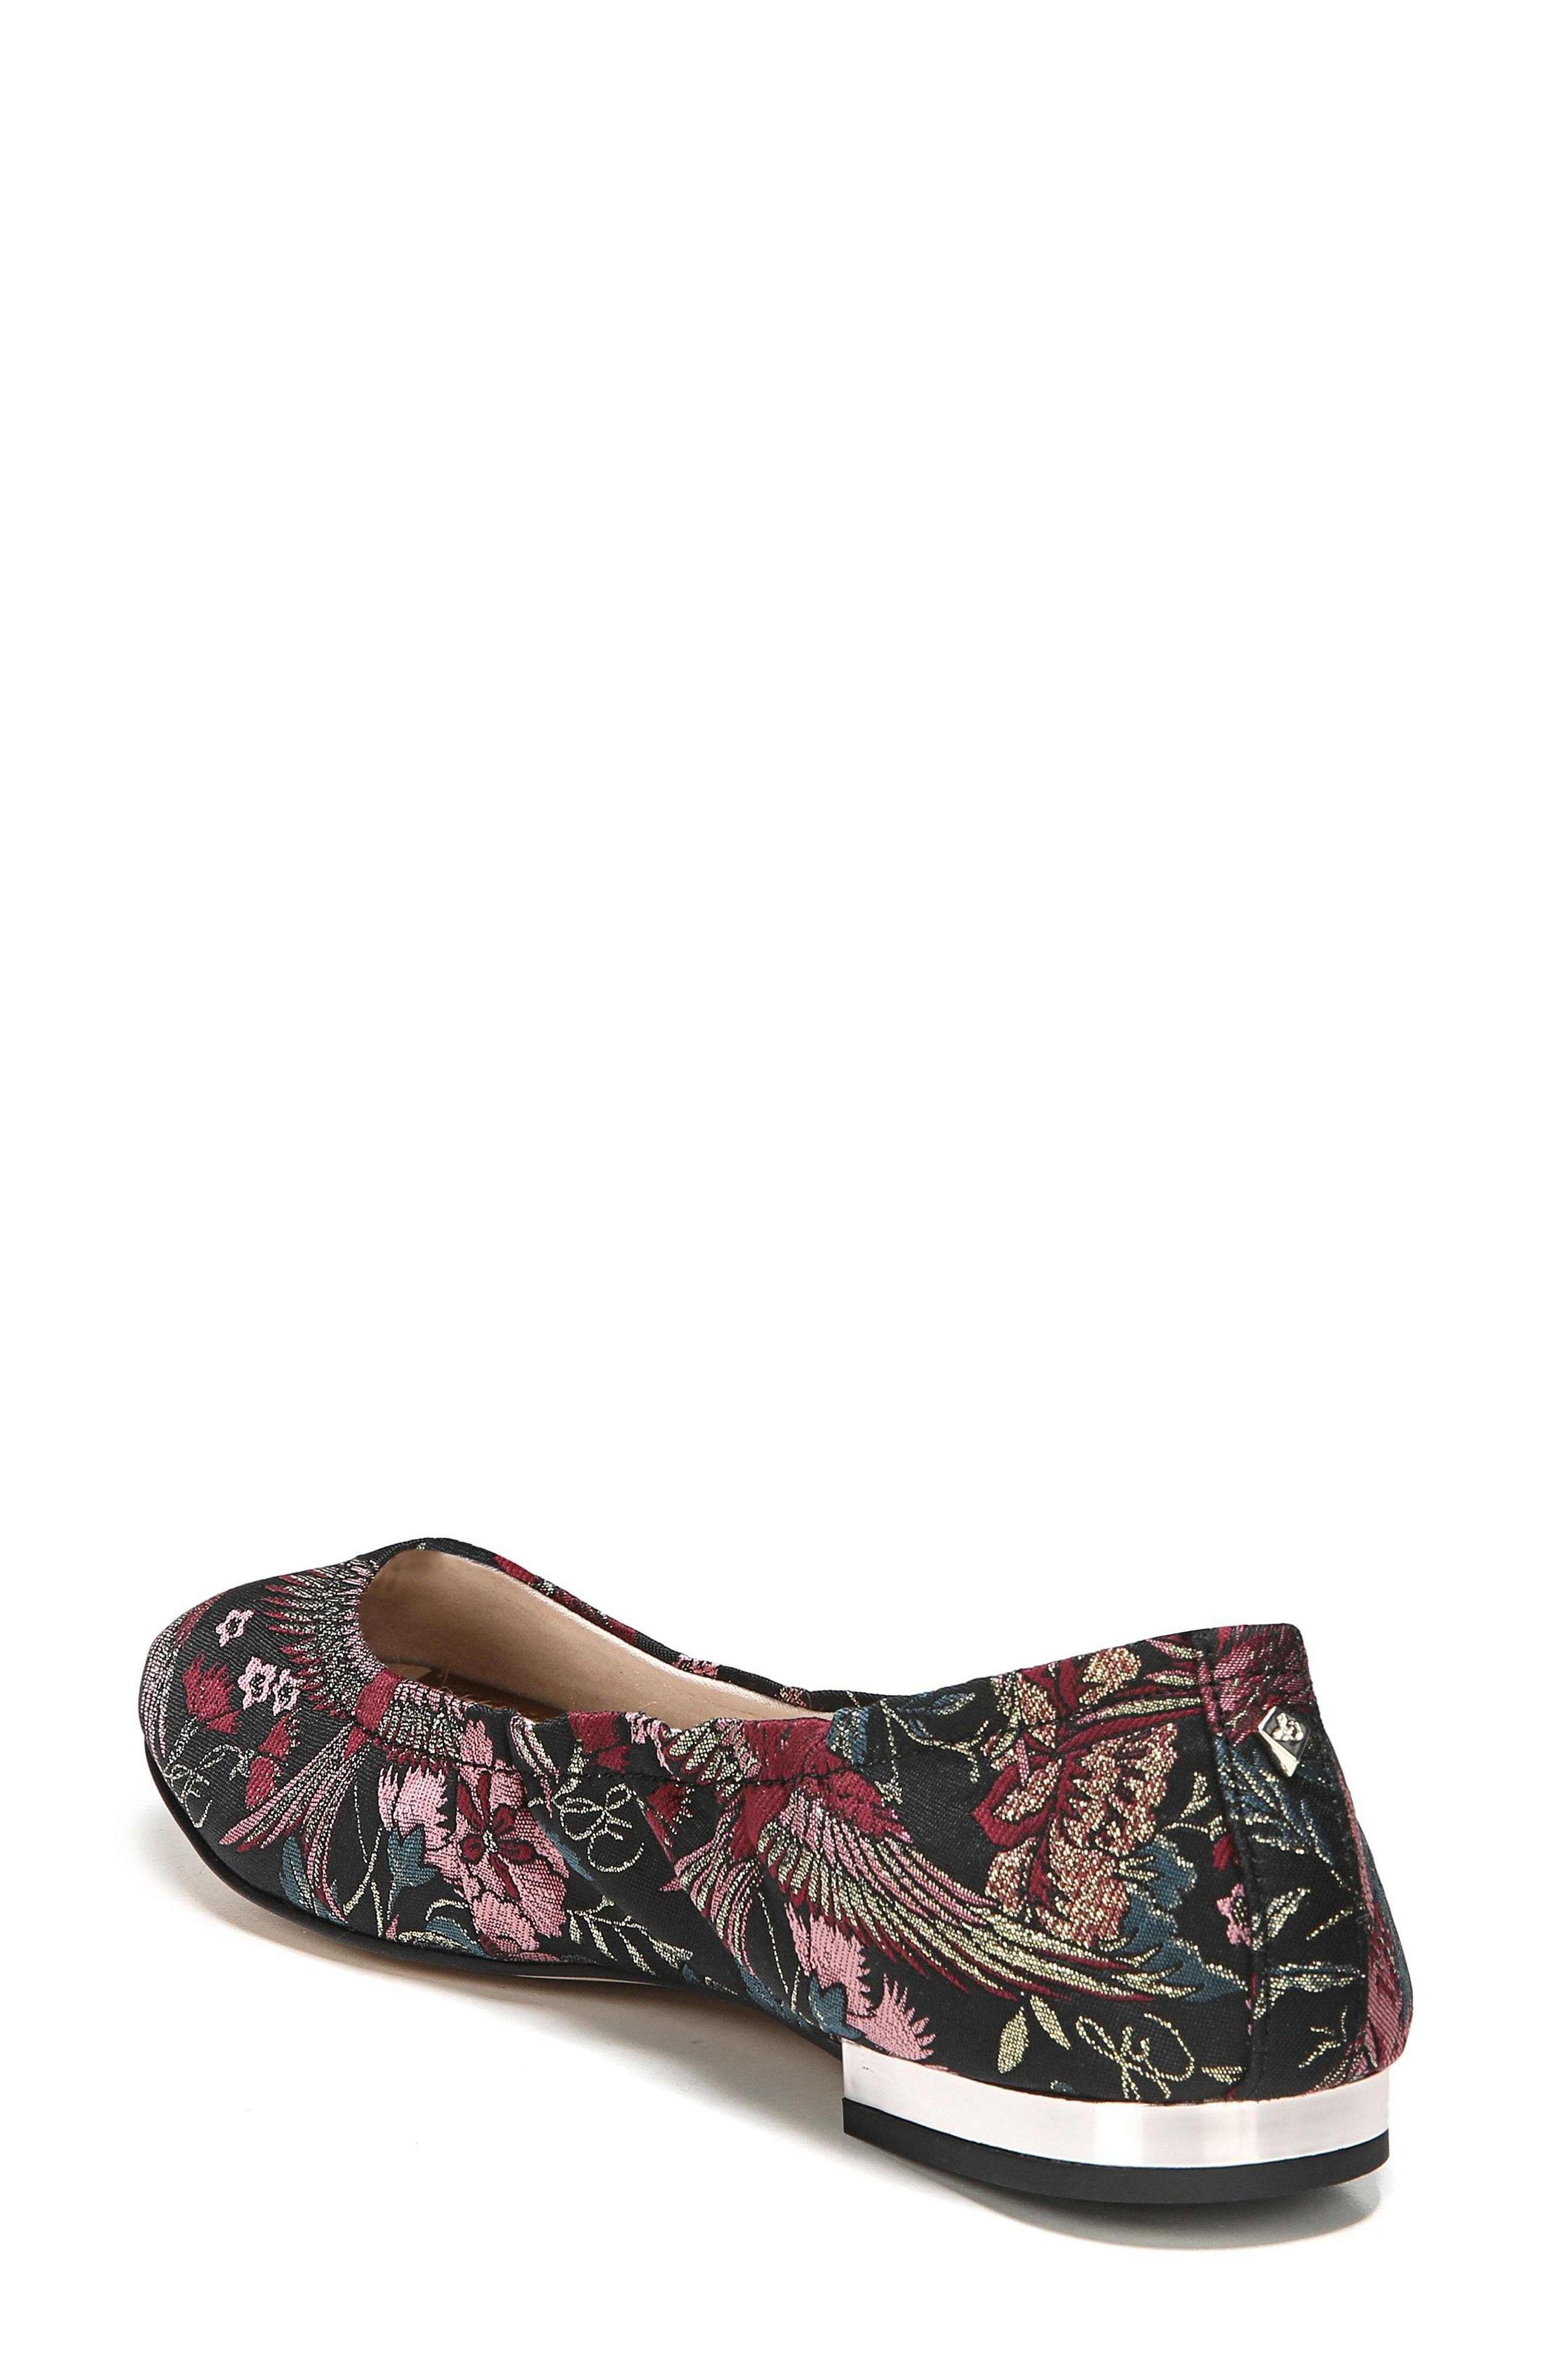 SAM EDELMAN,                             Farrow Flat,                             Alternate thumbnail 2, color,                             001